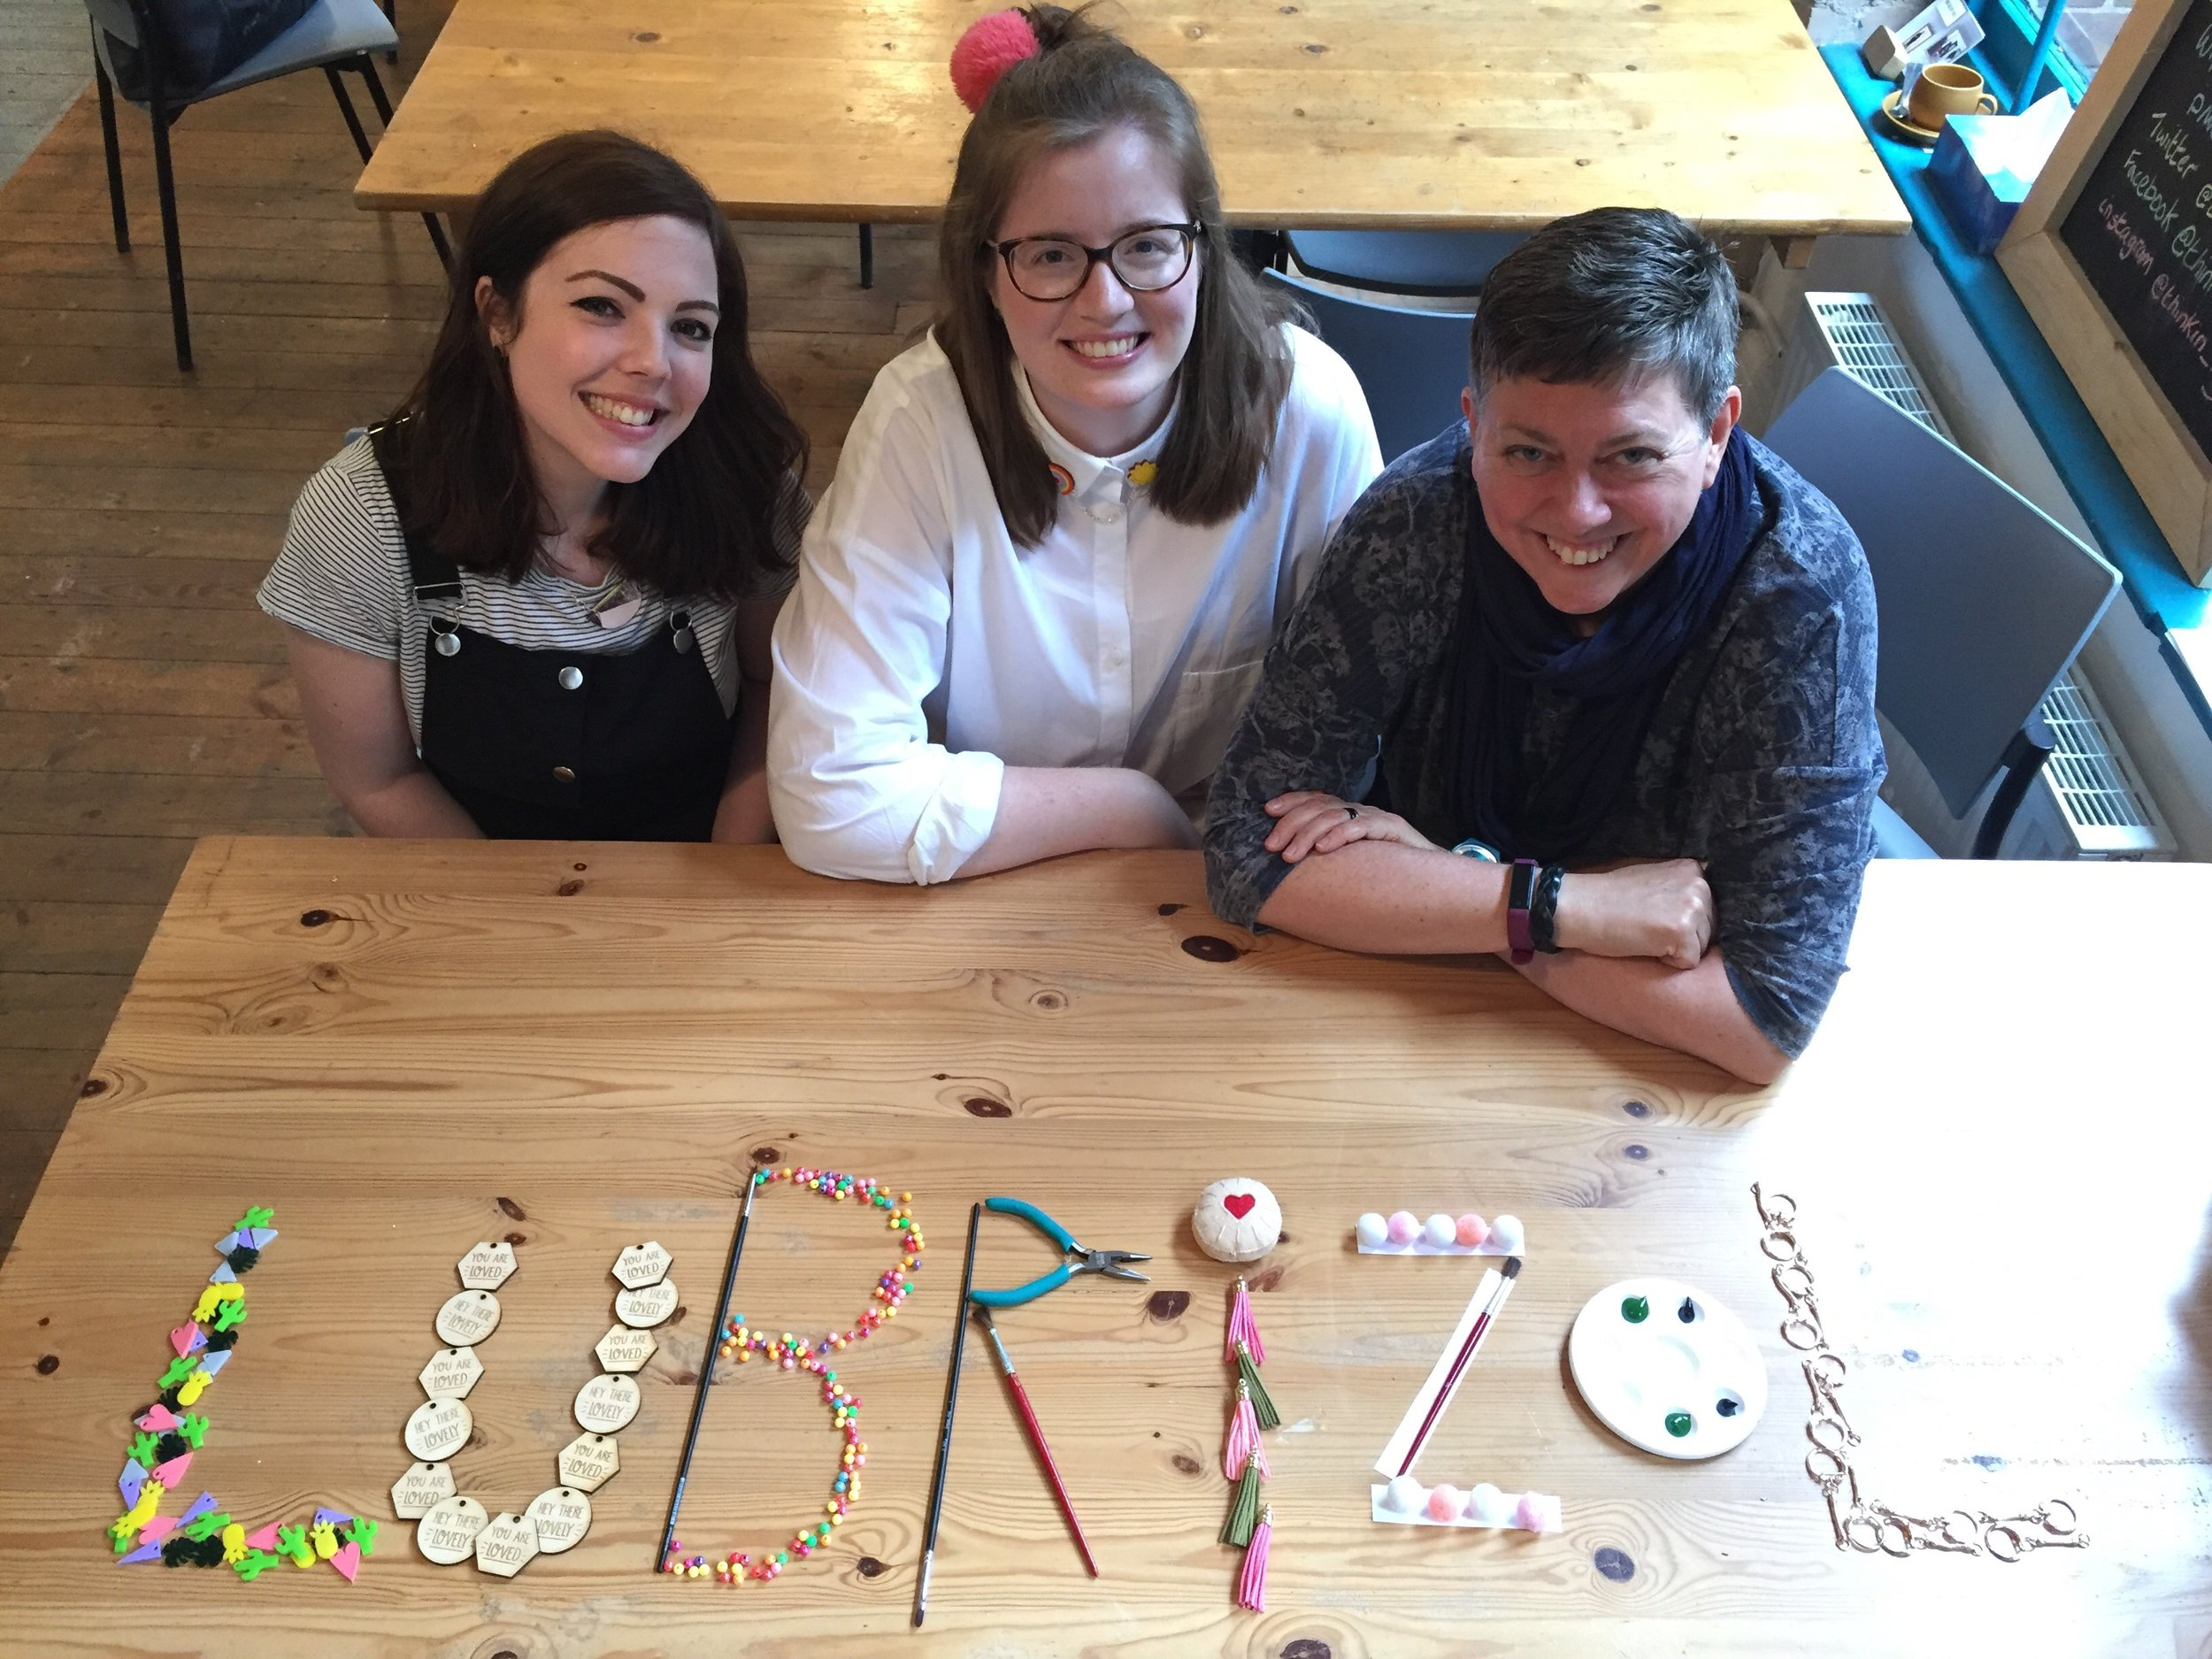 From left, Emma Rees and Menekse Stewart, who successfully pitched for funding for a new Saturday morning craft club, with Karen Clegg, charities and communities manager at chemical company Lubrizol. Penguin PR: public relations, media and communications